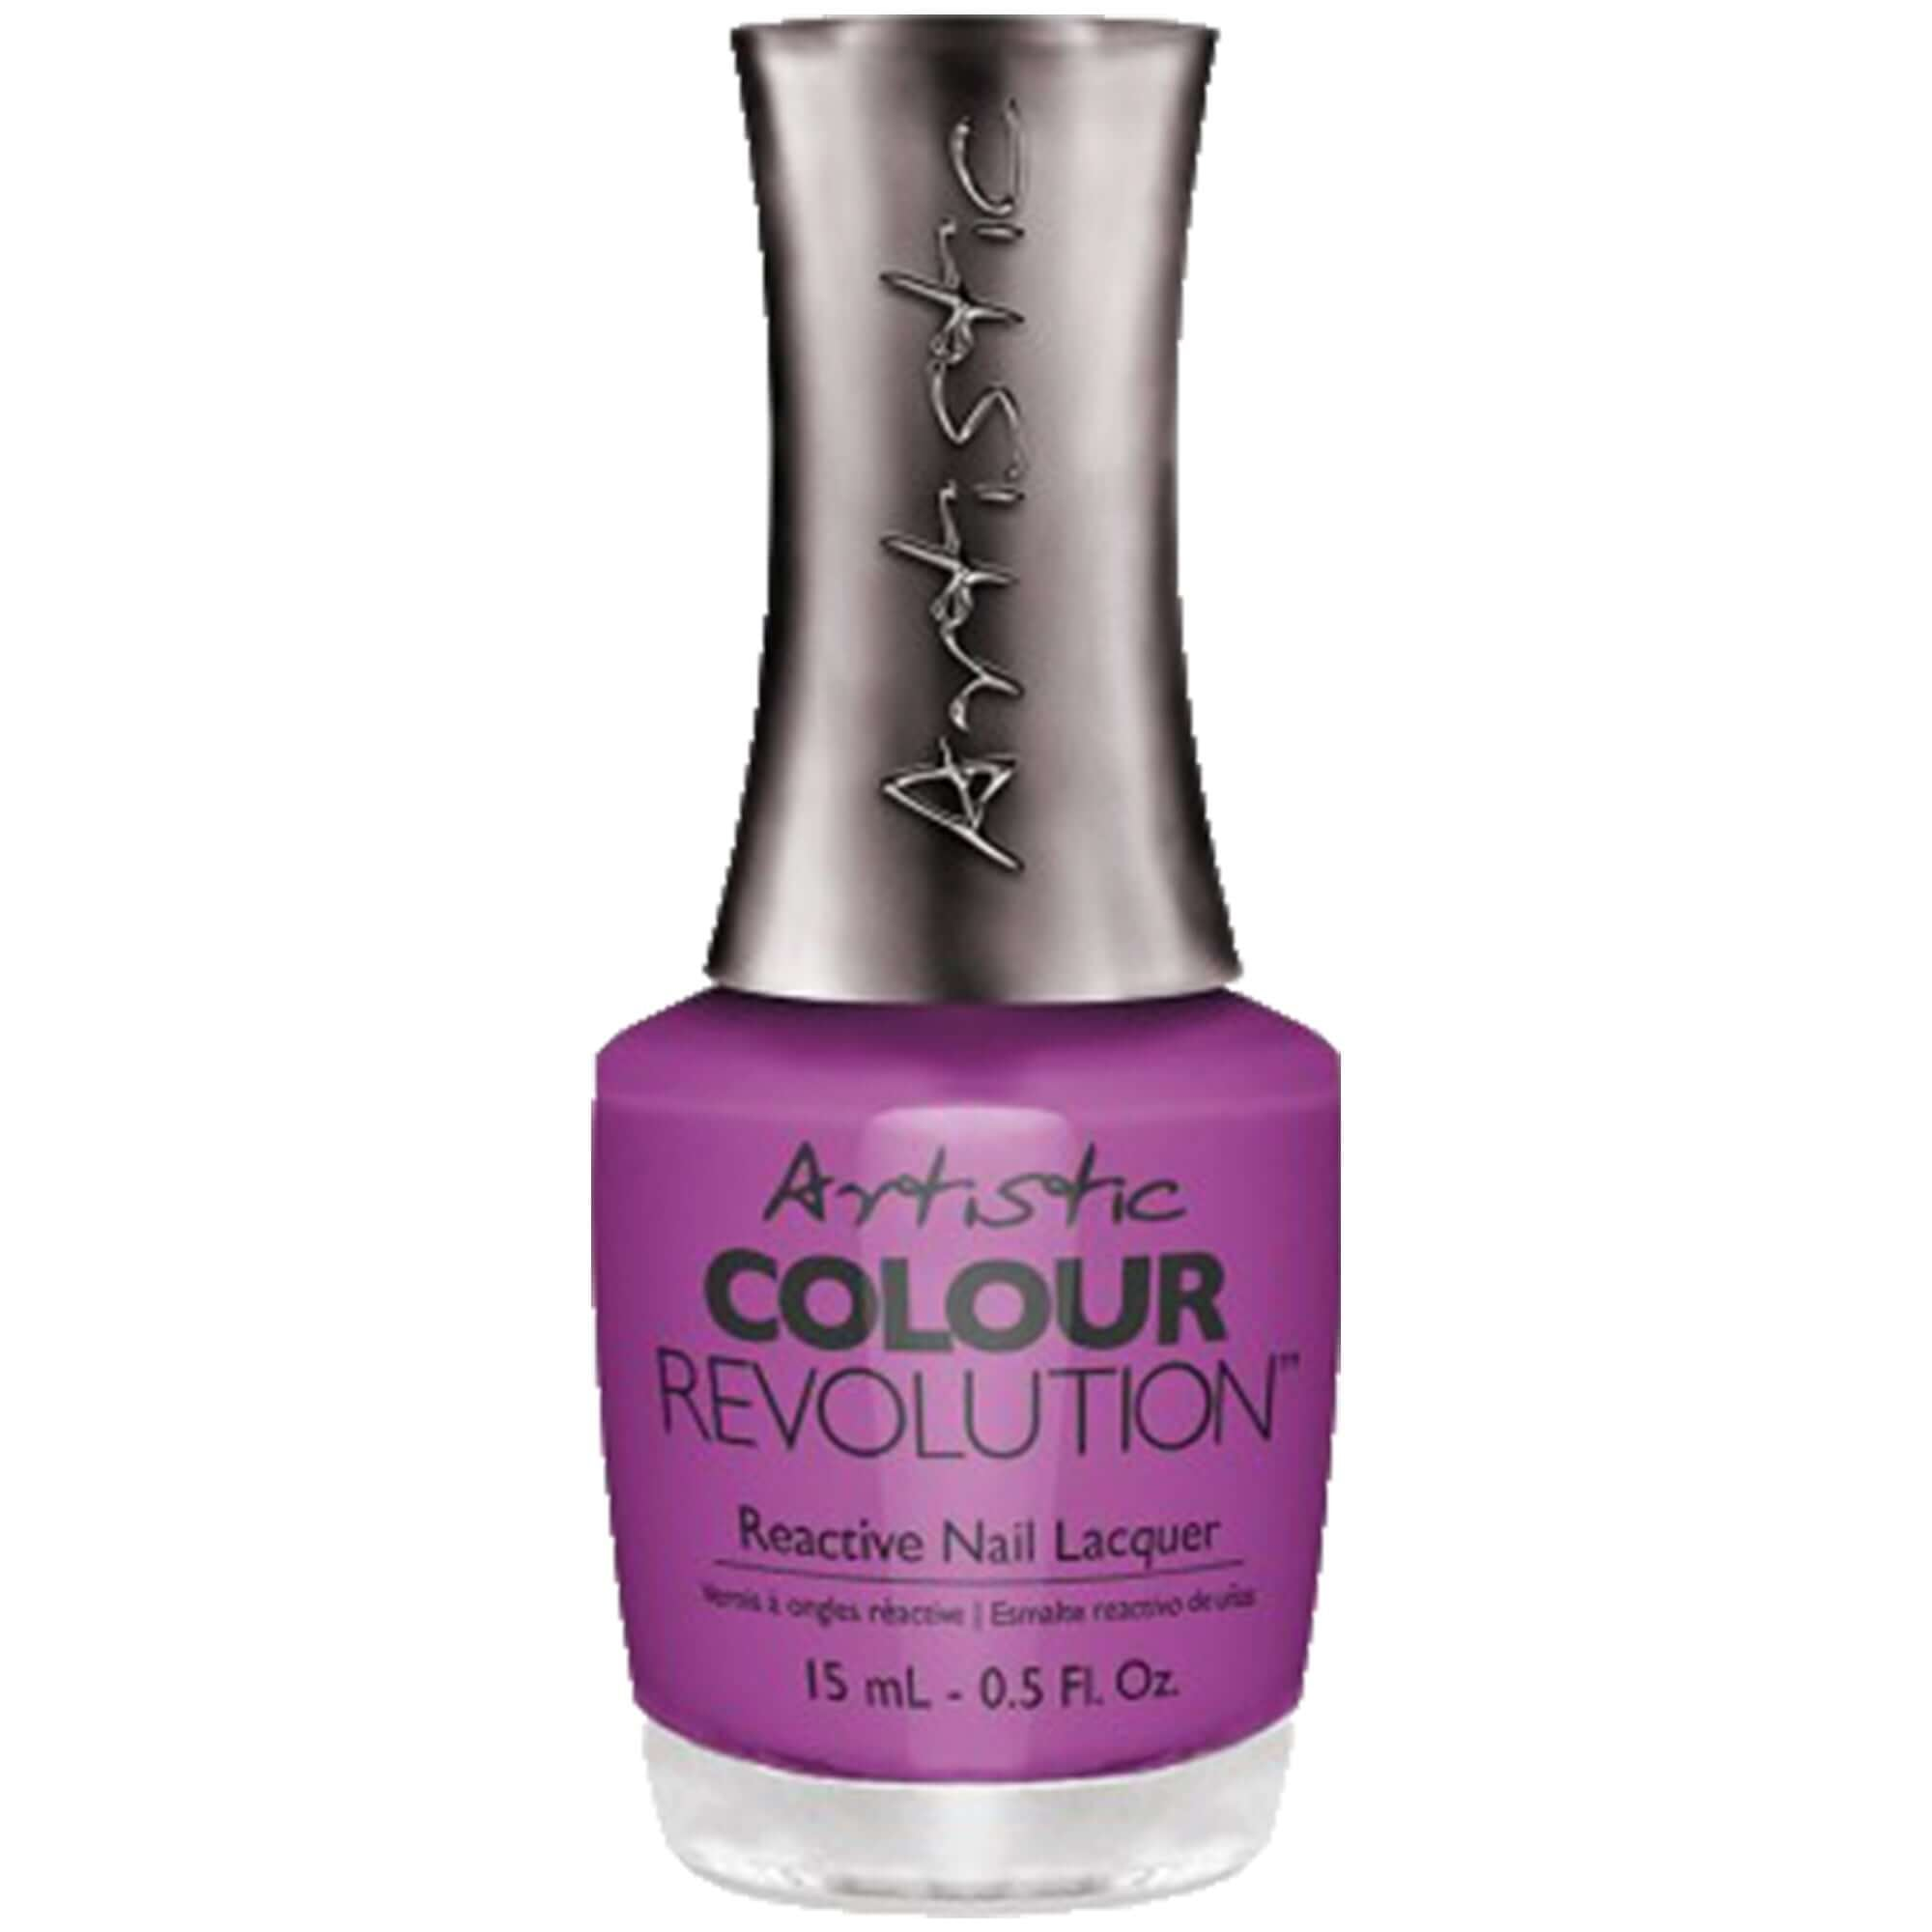 Artistic Colour Revolution Nail Lacquer - Shred It Up (2300098) 15ml